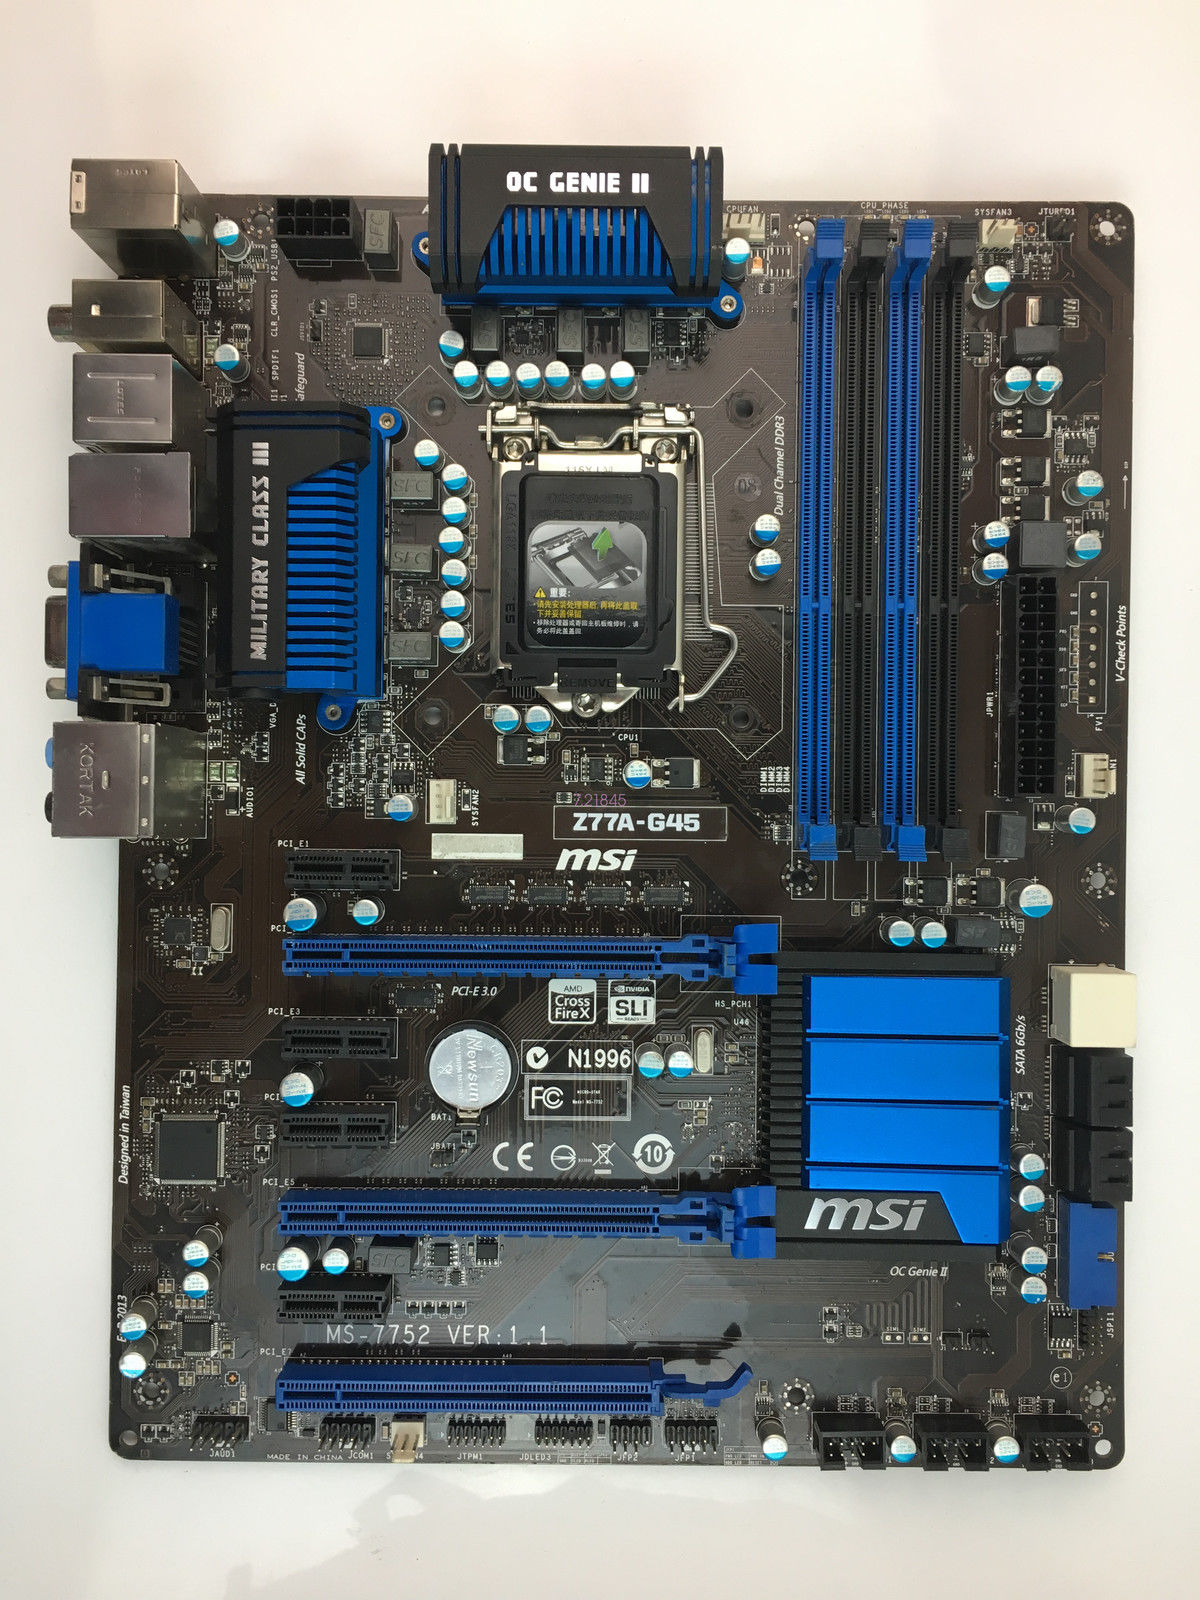 MSI MS-7752 Z77A-G45 Motherboard skt 1155 DDR3 Intel Z77